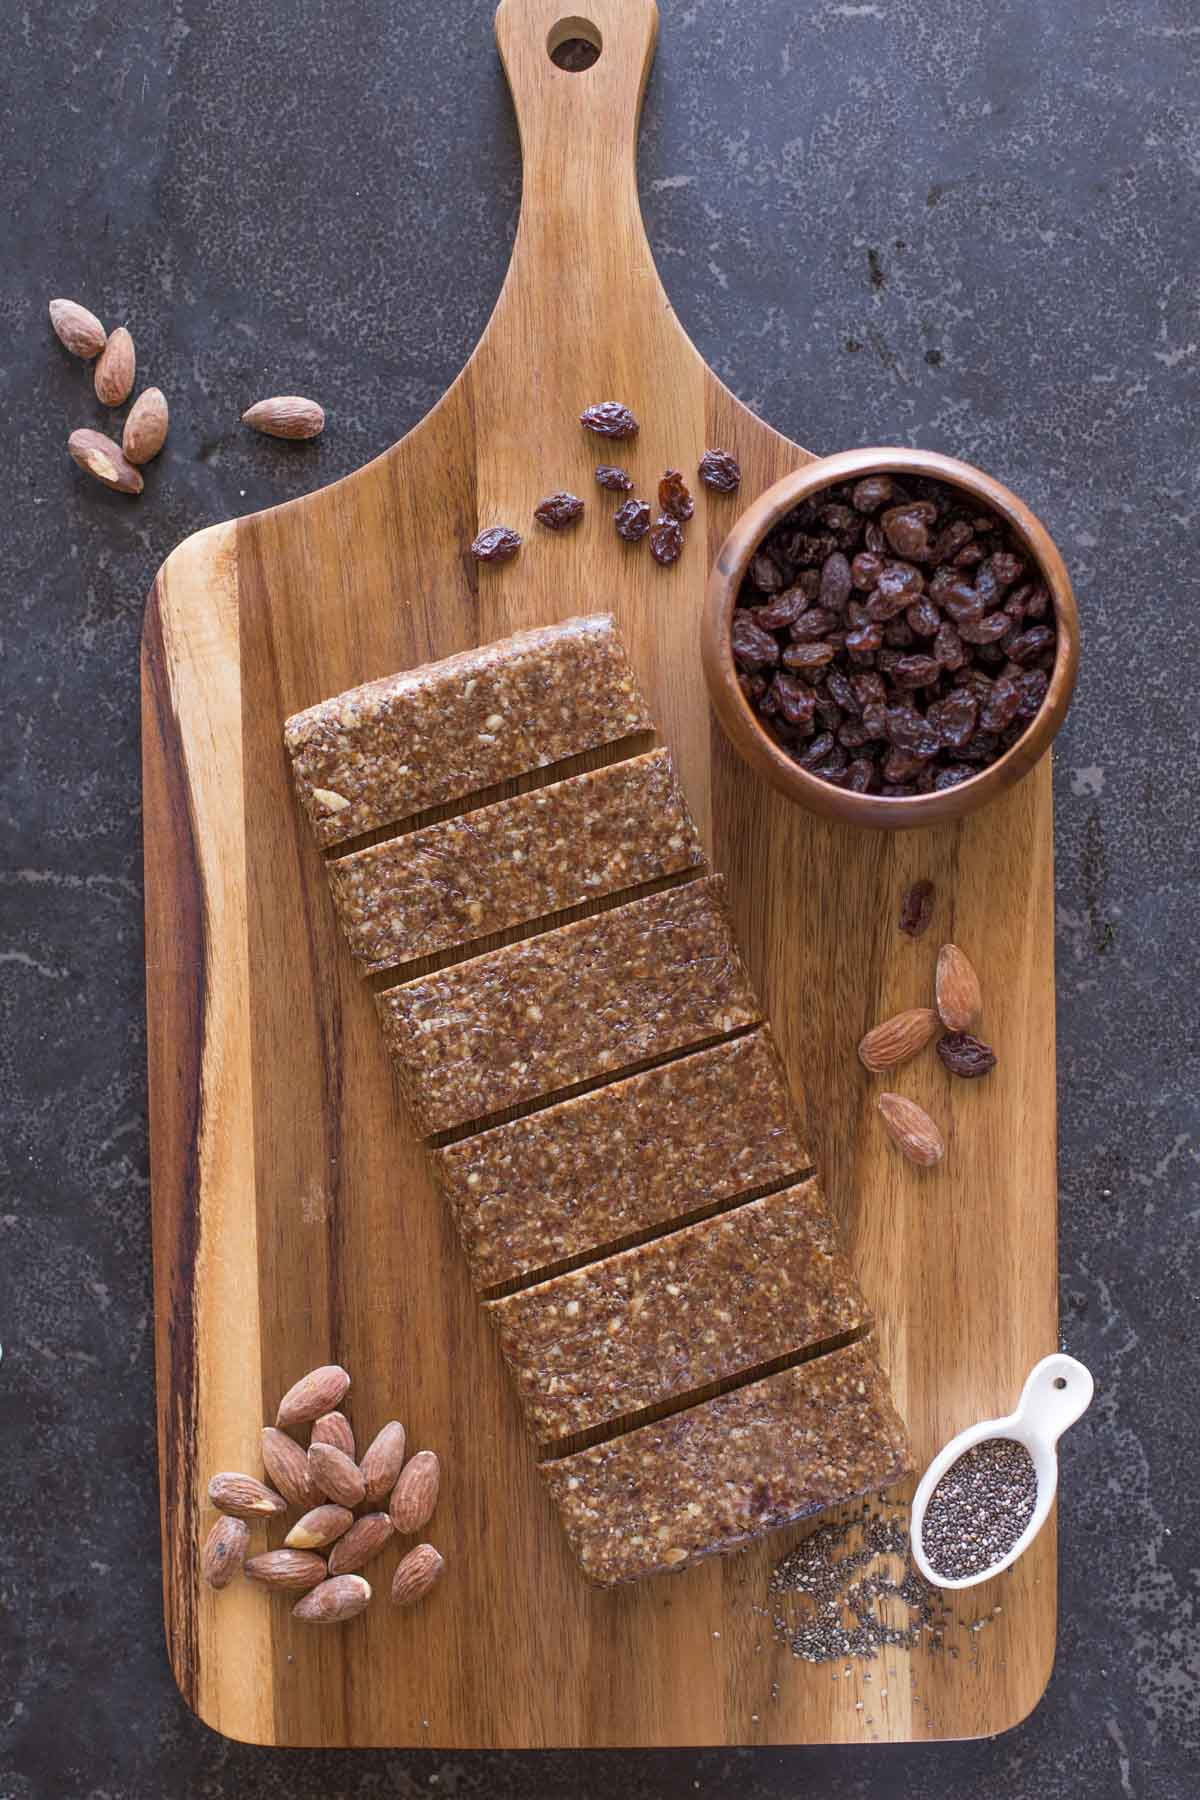 Make your own energy bars with only five ingredients. Perfect for healthy snacking on the go!